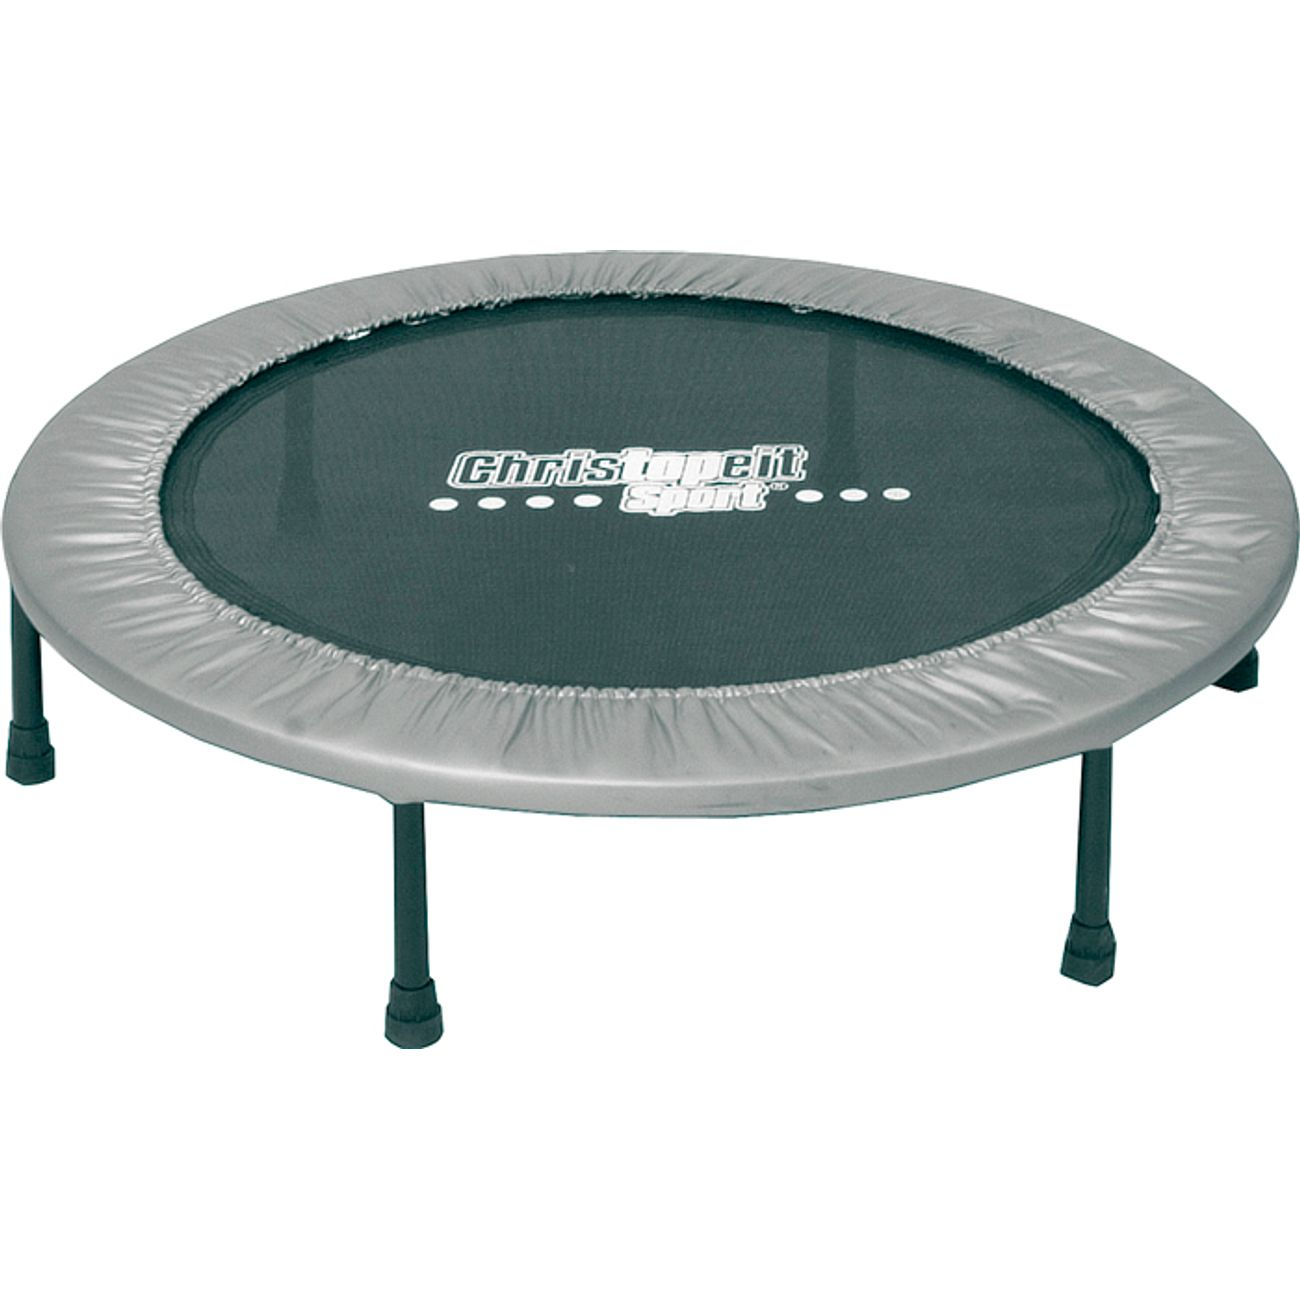 trampoline christopeit fitness 100 cm achat et prix pas cher go sport. Black Bedroom Furniture Sets. Home Design Ideas